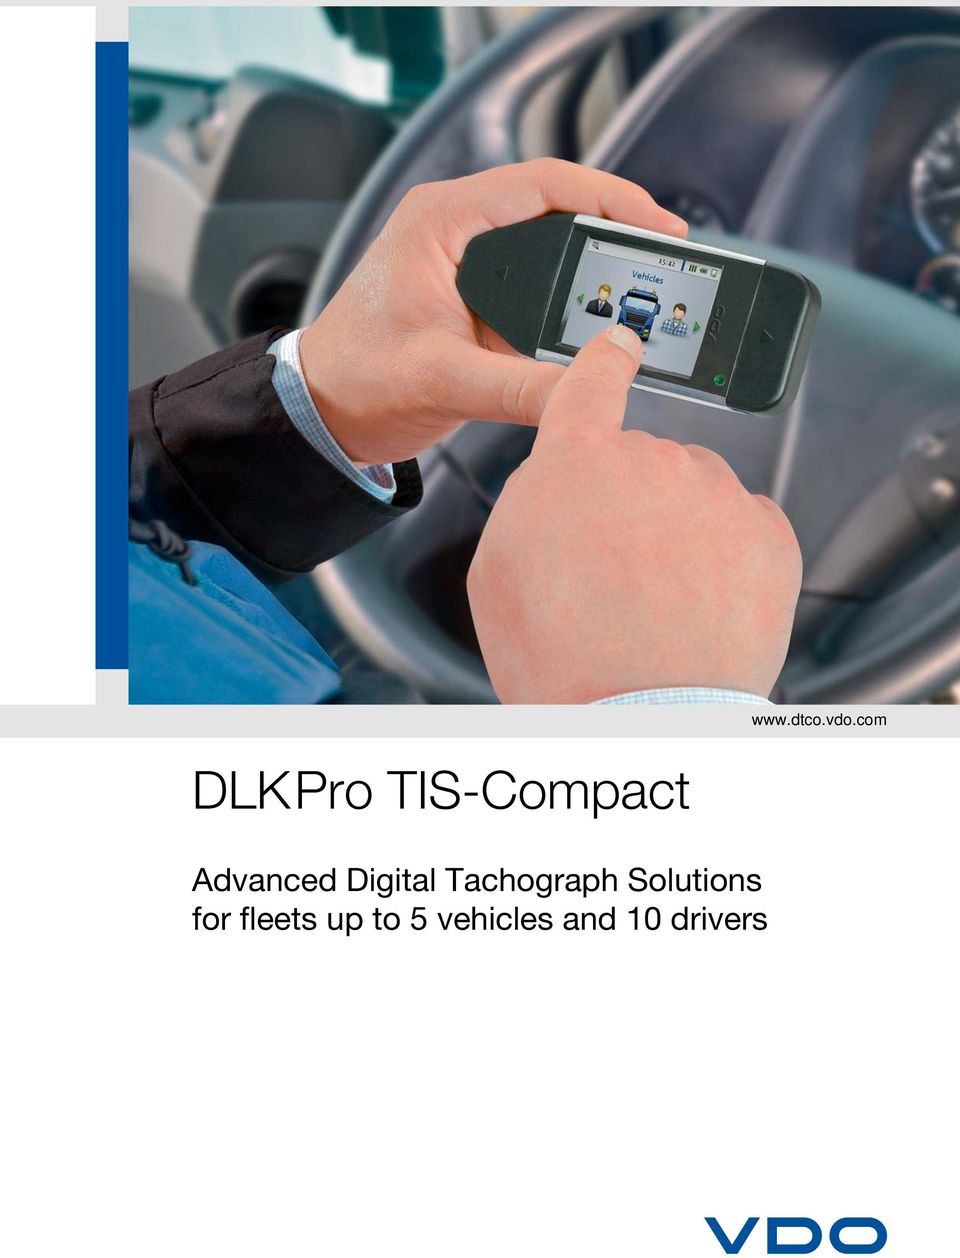 Advanced Digital Tachograph